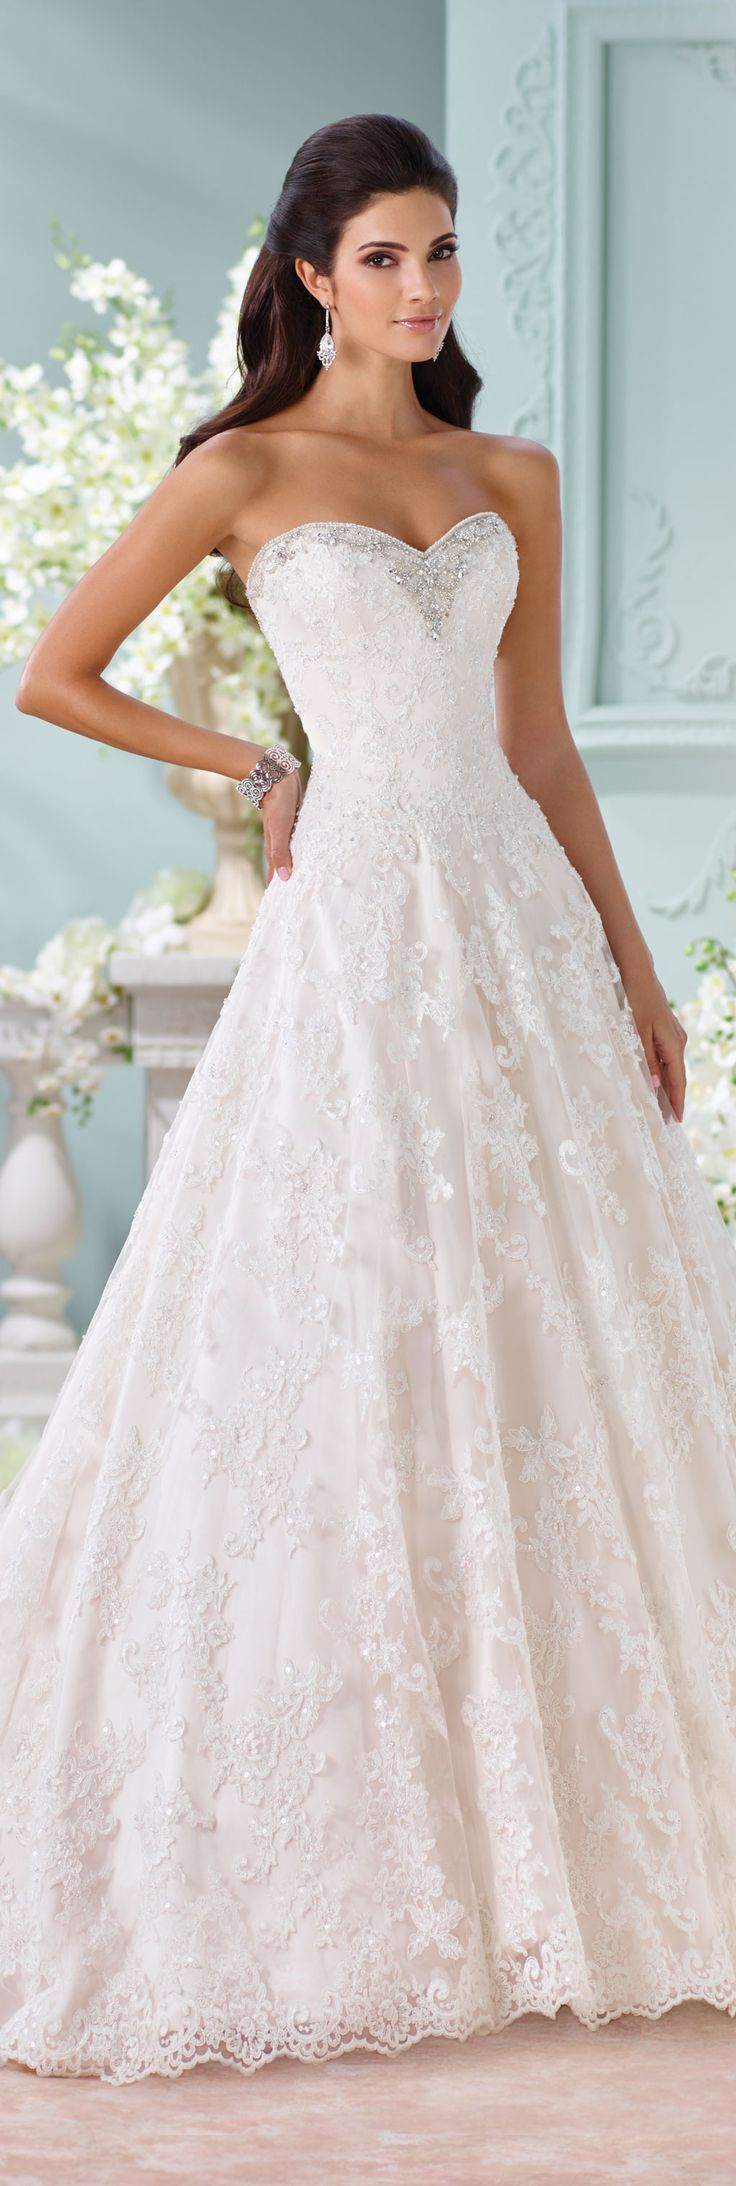 The David Tutera For Mon Cheri Spring 2016 Wedding Gown Collection   Style  No. 116211